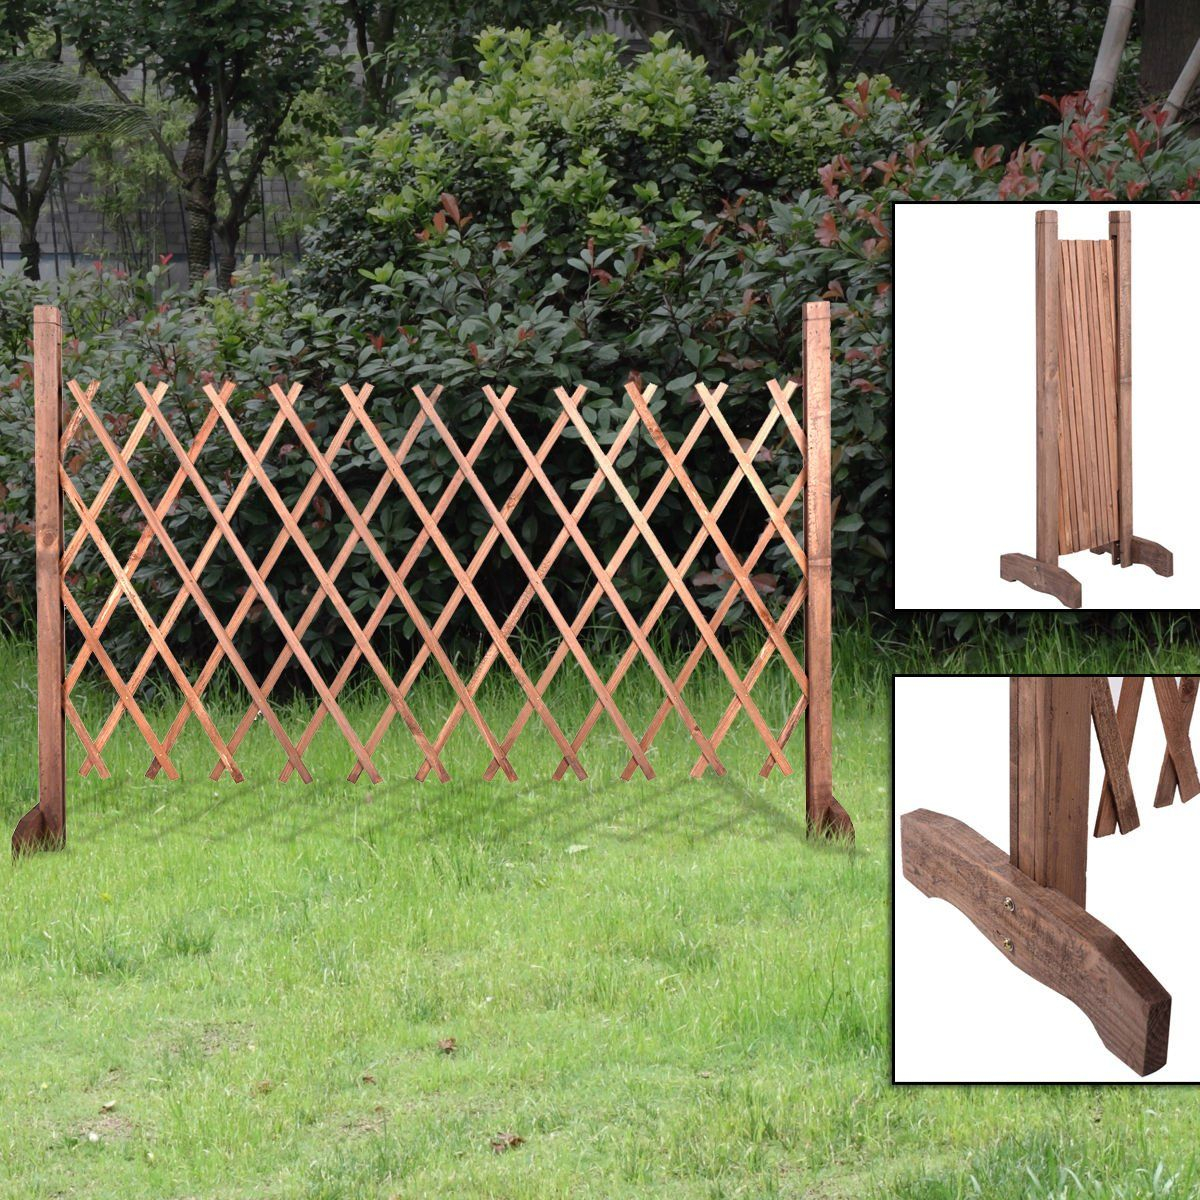 Expanding Portable Wooden Fence Screen Gate Kid Safety Dog Pet Patio inside  measurements 1200 X 1200 - Portable Patio Fence With Gate • Fence Ideas Site